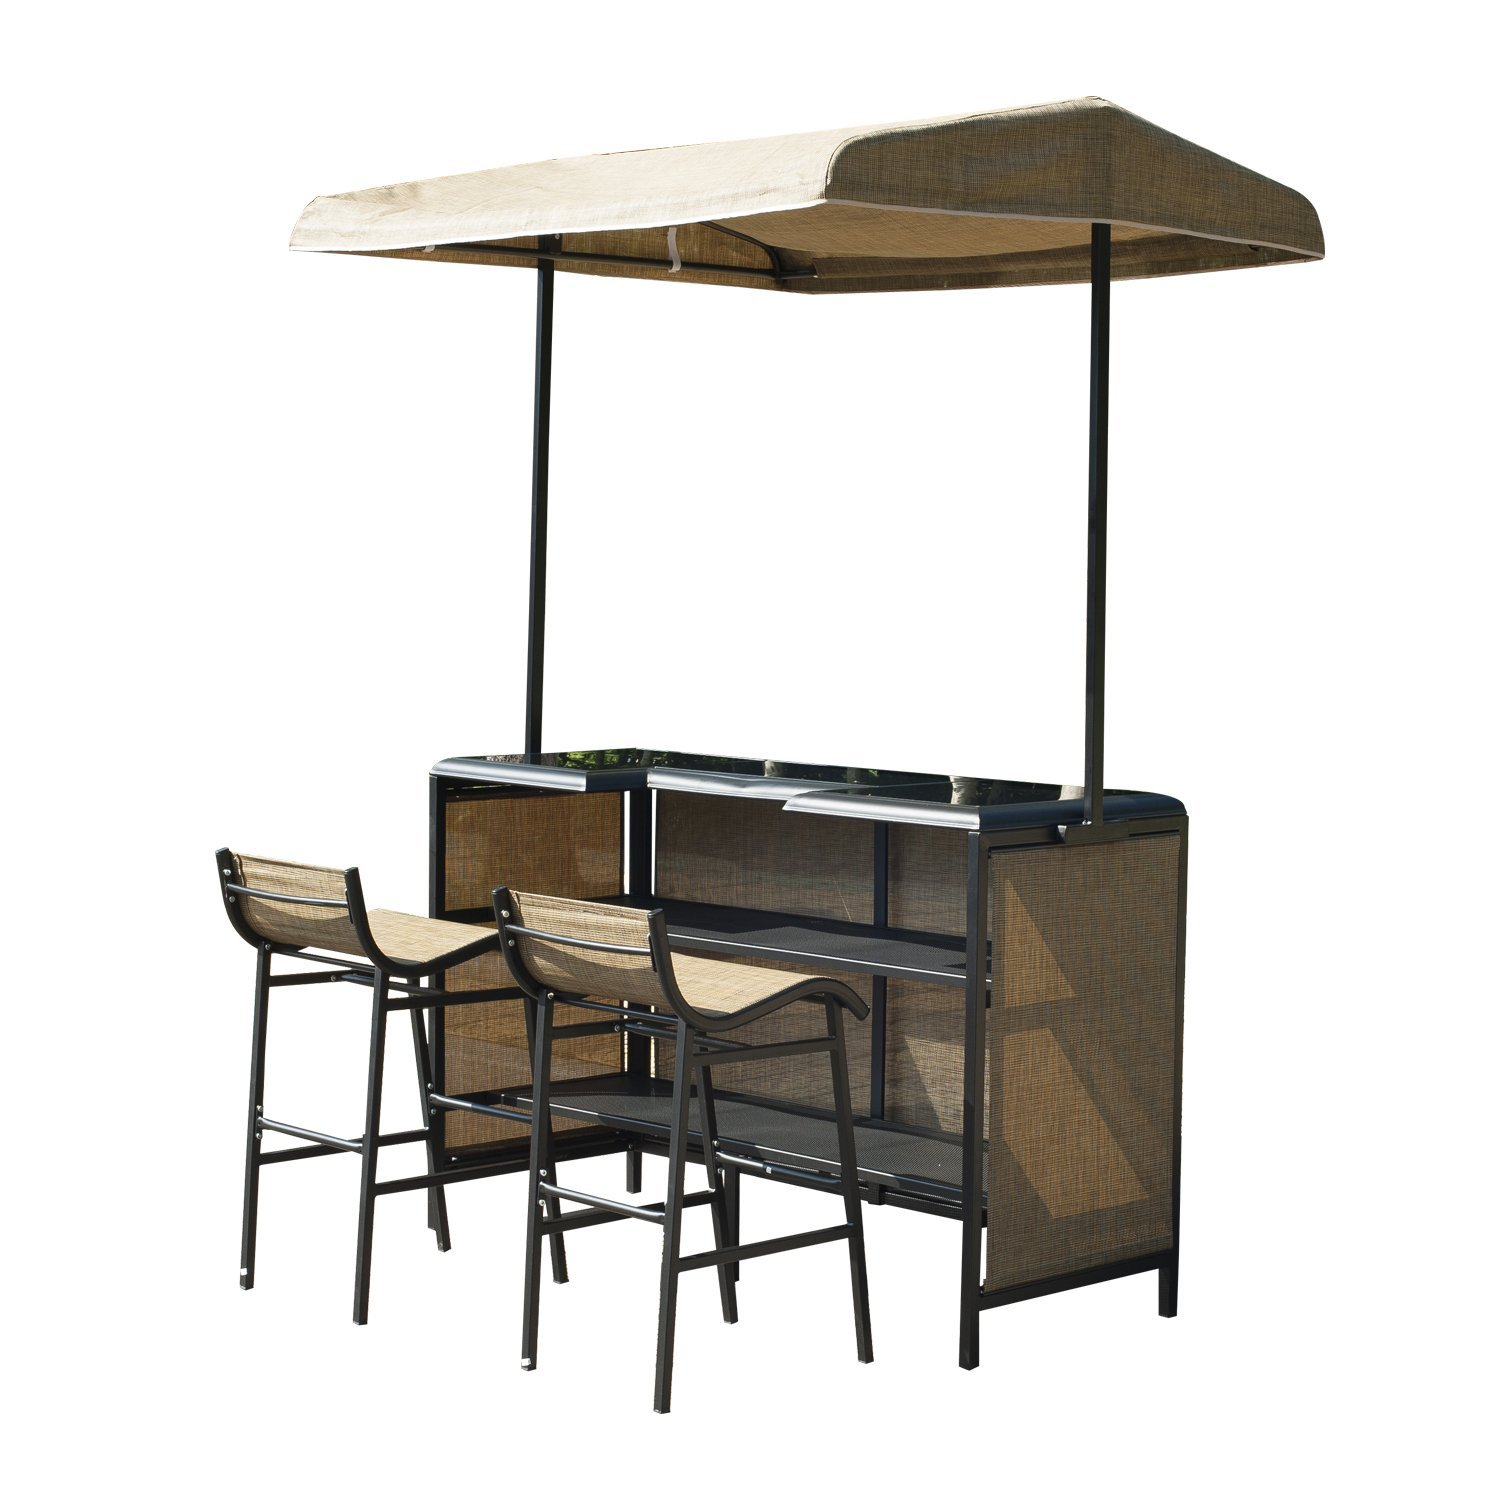 Image of CAD $349.99 Outsunny 3 Piece Outdoor Bar Table and Stool Set with Canopy Garden Patio Furniture Beige / CLEARANCE 3pcs w/ Canada 25093571138